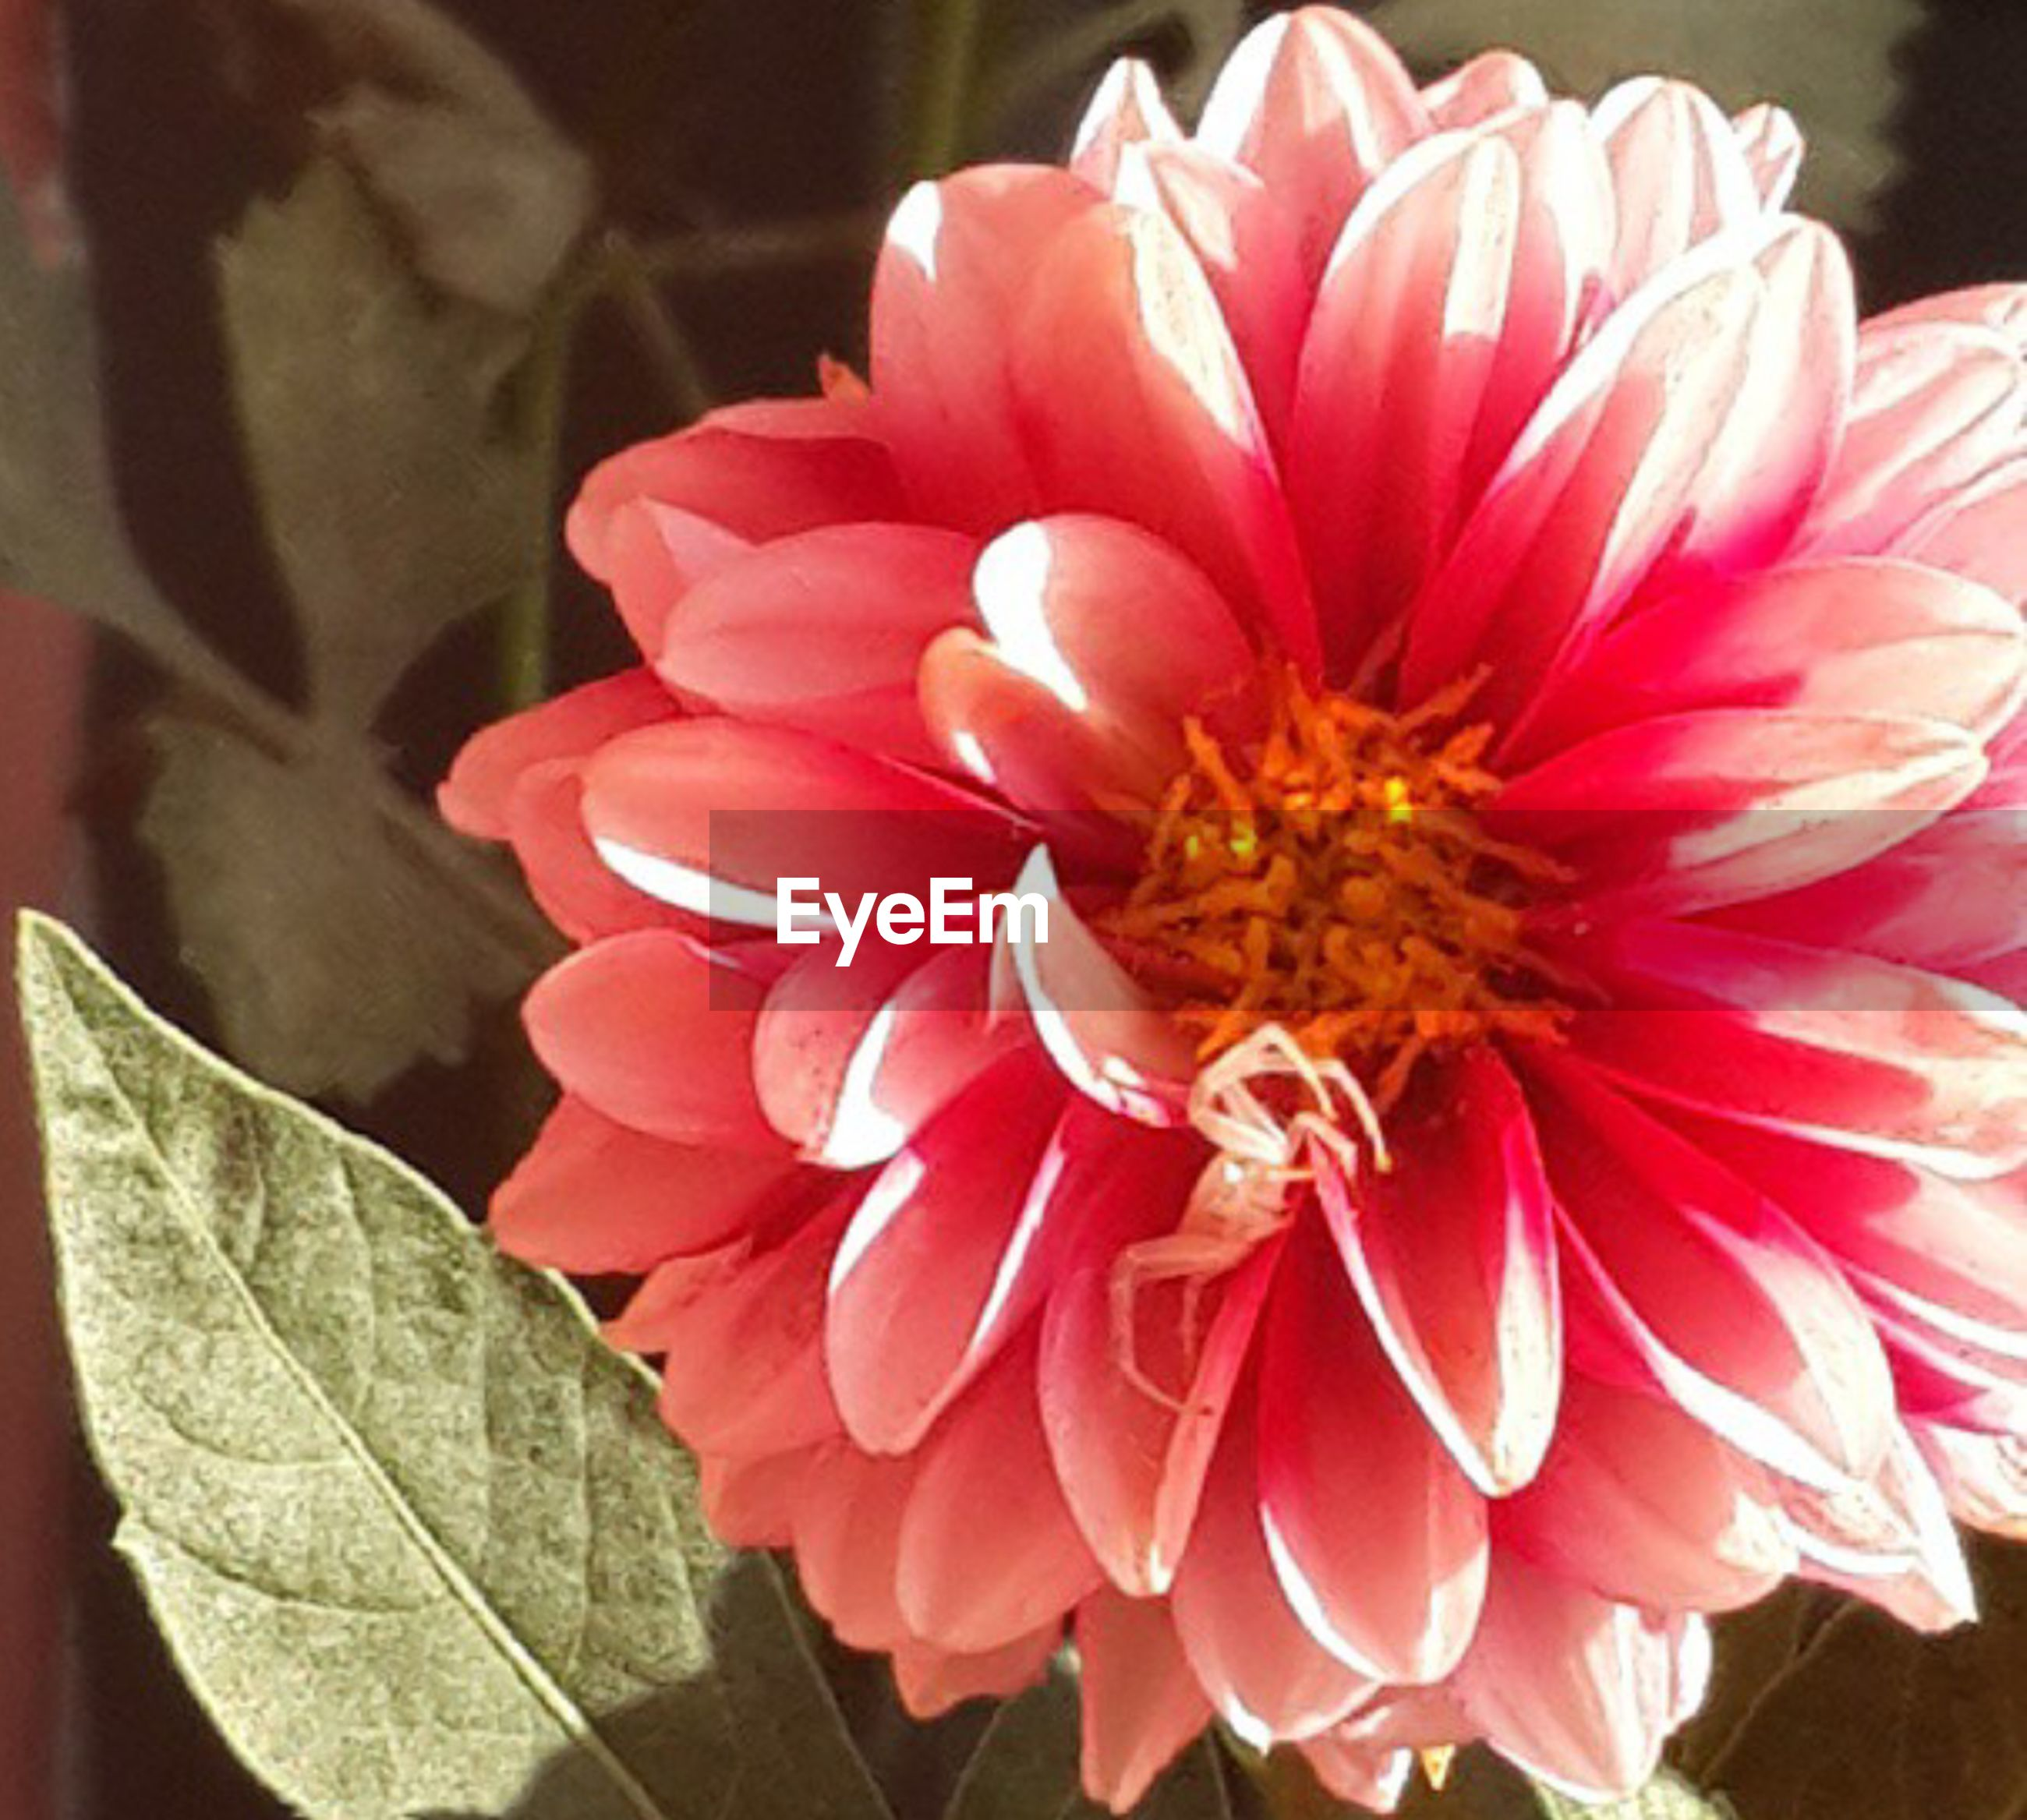 flower, petal, flower head, freshness, fragility, close-up, pink color, beauty in nature, focus on foreground, blooming, red, growth, nature, single flower, indoors, plant, pink, rose - flower, dahlia, day